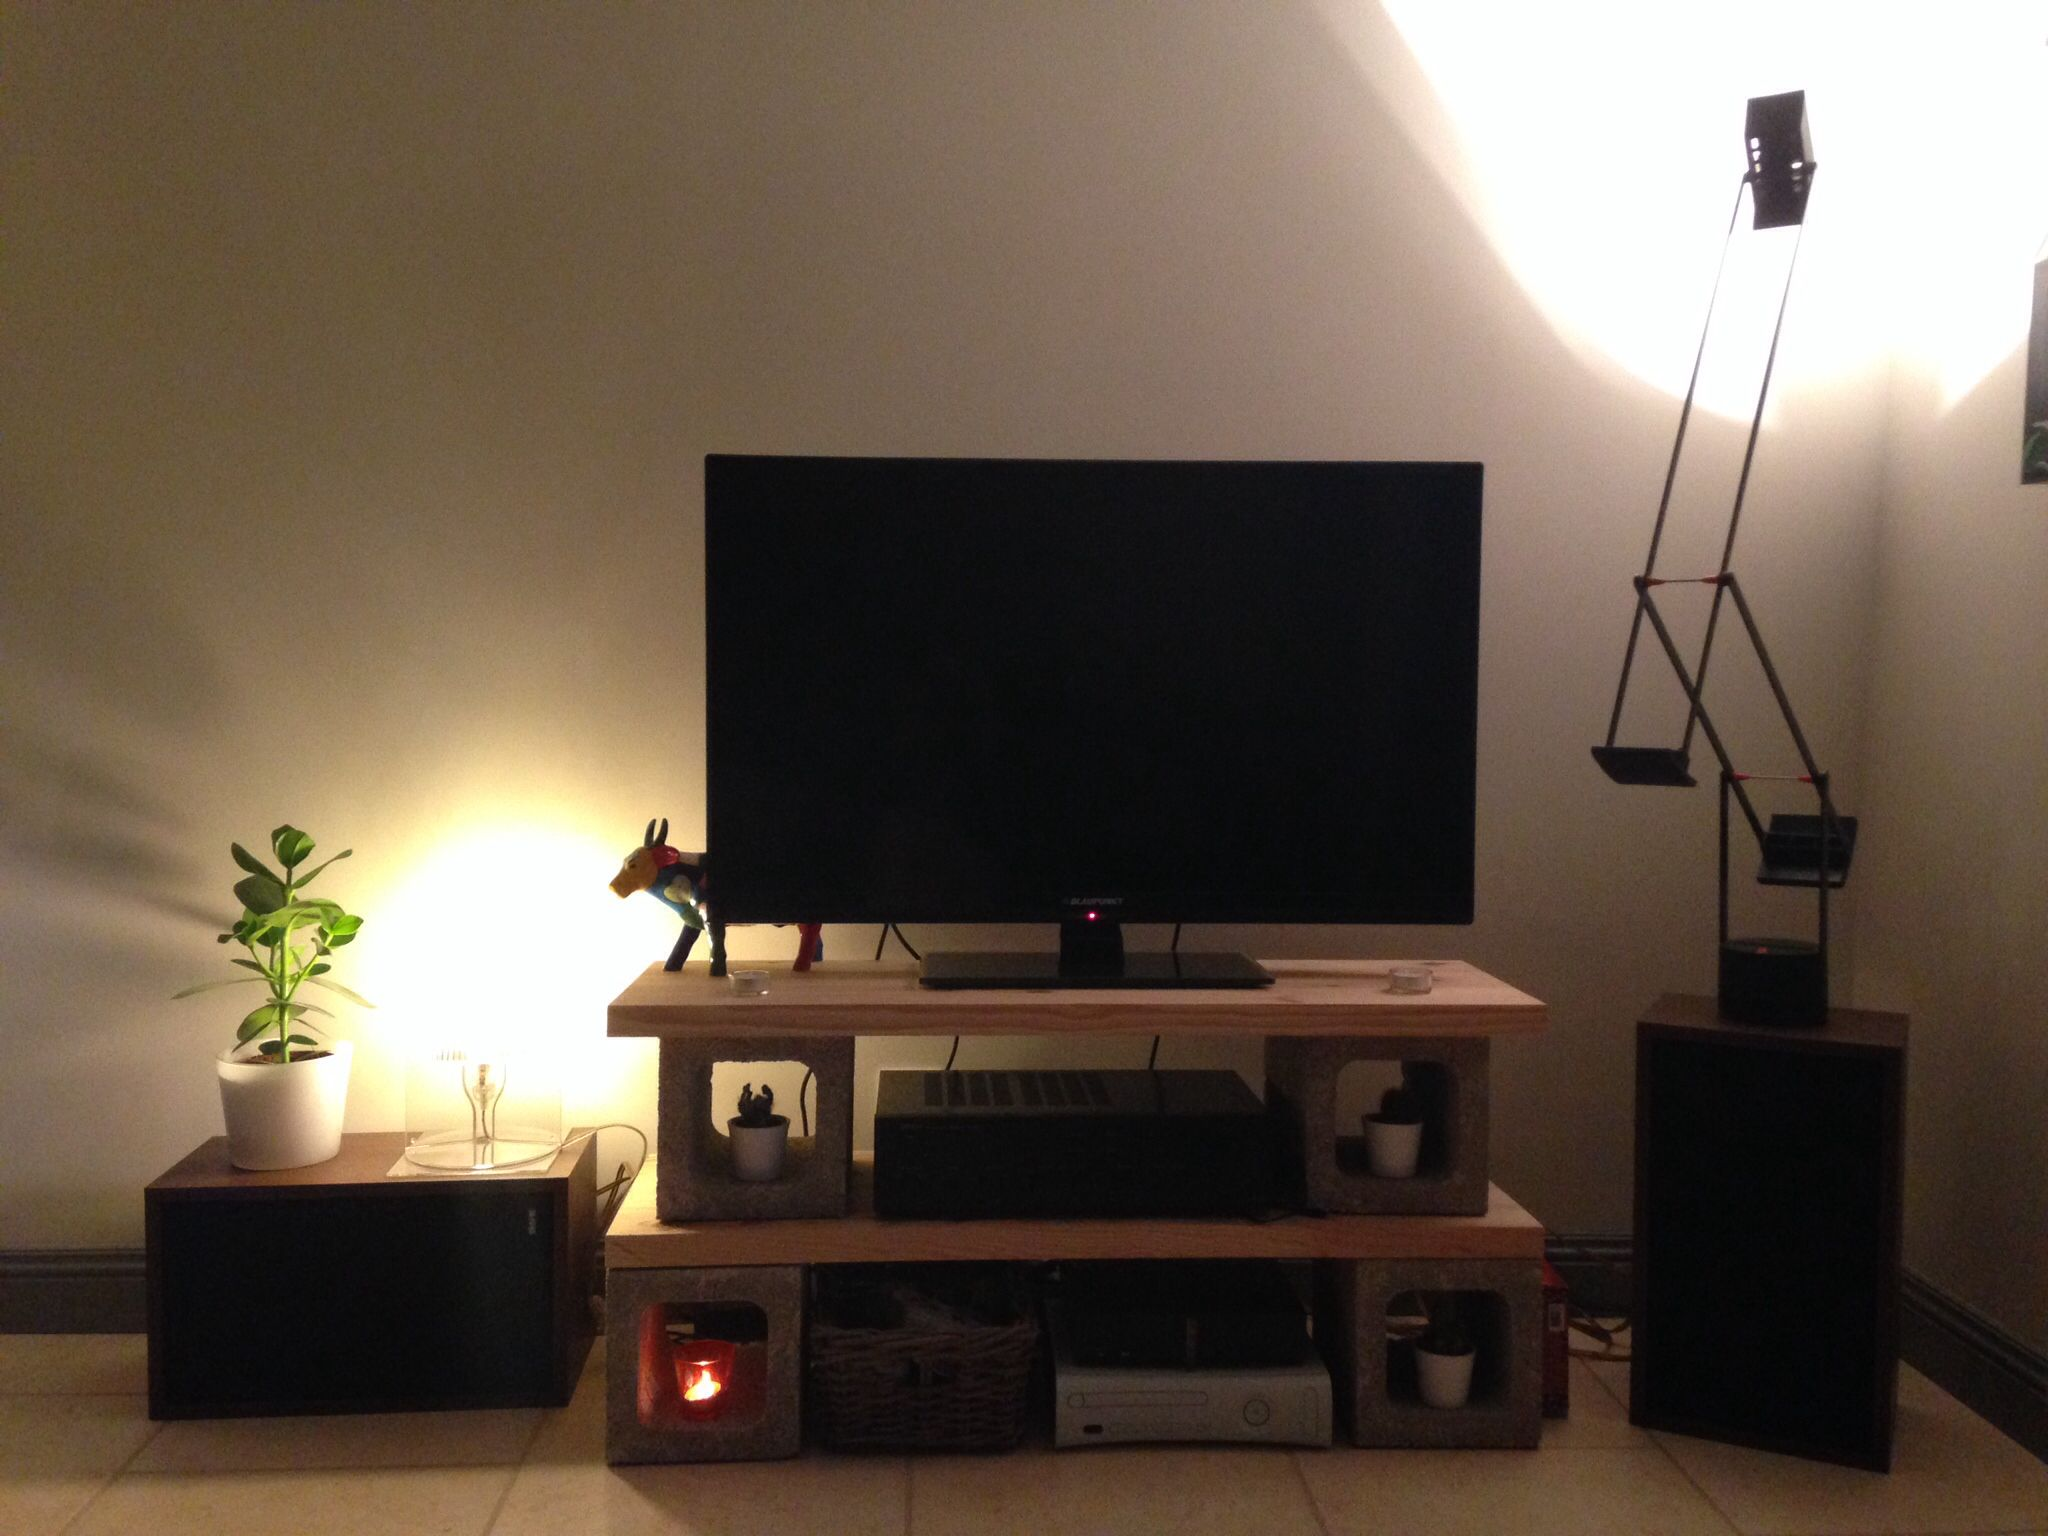 meuble tv avec parpaings et planche de bois diy home. Black Bedroom Furniture Sets. Home Design Ideas